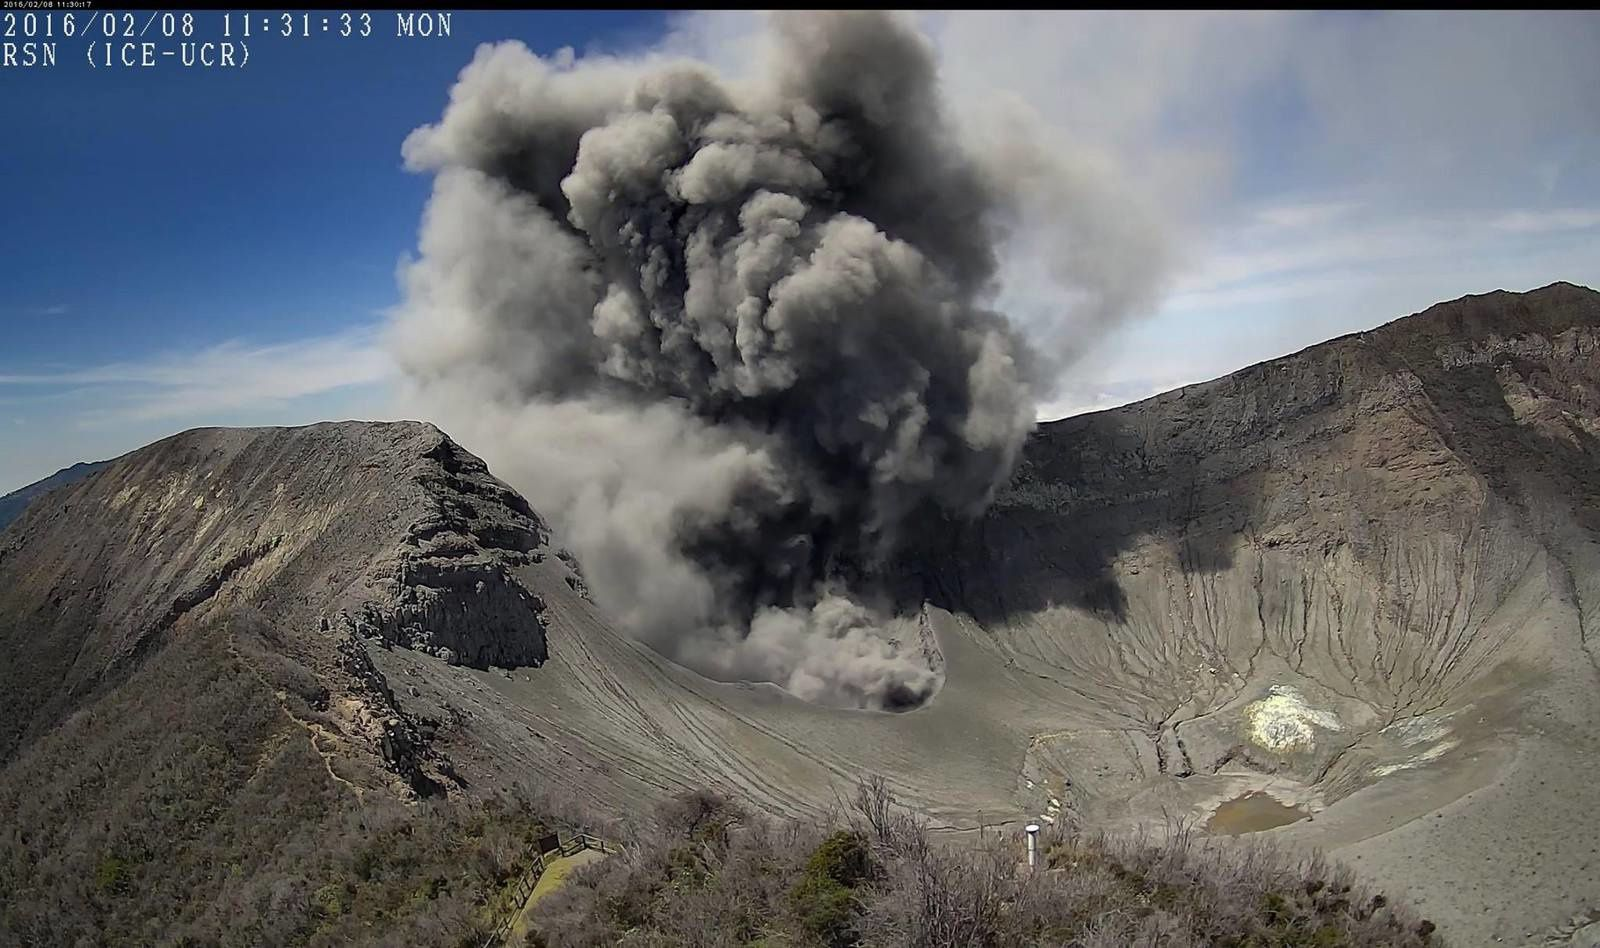 Turrialba - émanation de cendres le 08.02.2016 à 11h31 loc. - photo RSN